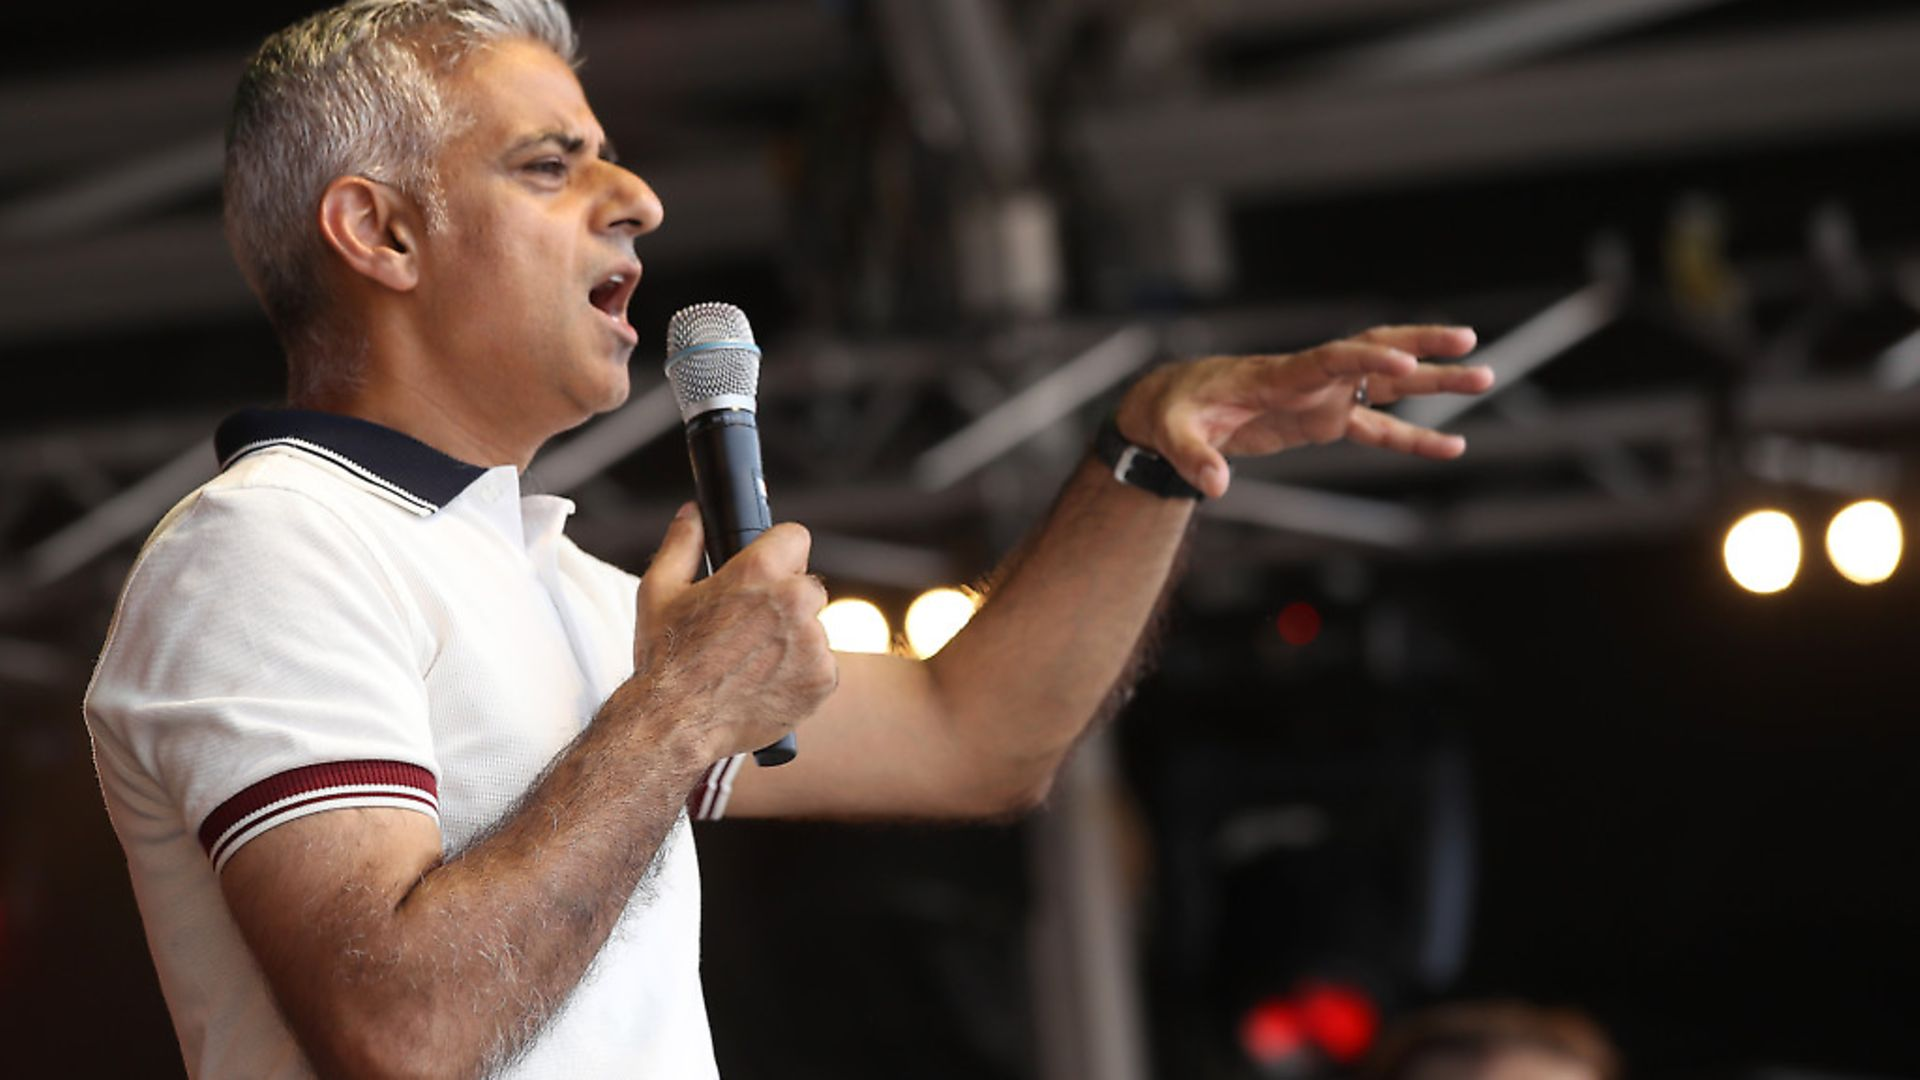 Mayor of London Sadiq Khan speaks on the Trafalgar Square Stage during Pride In London 2018. Photo by Mike Marsland/WireImage for Pride In London. - Credit: WireImage for Pride In London